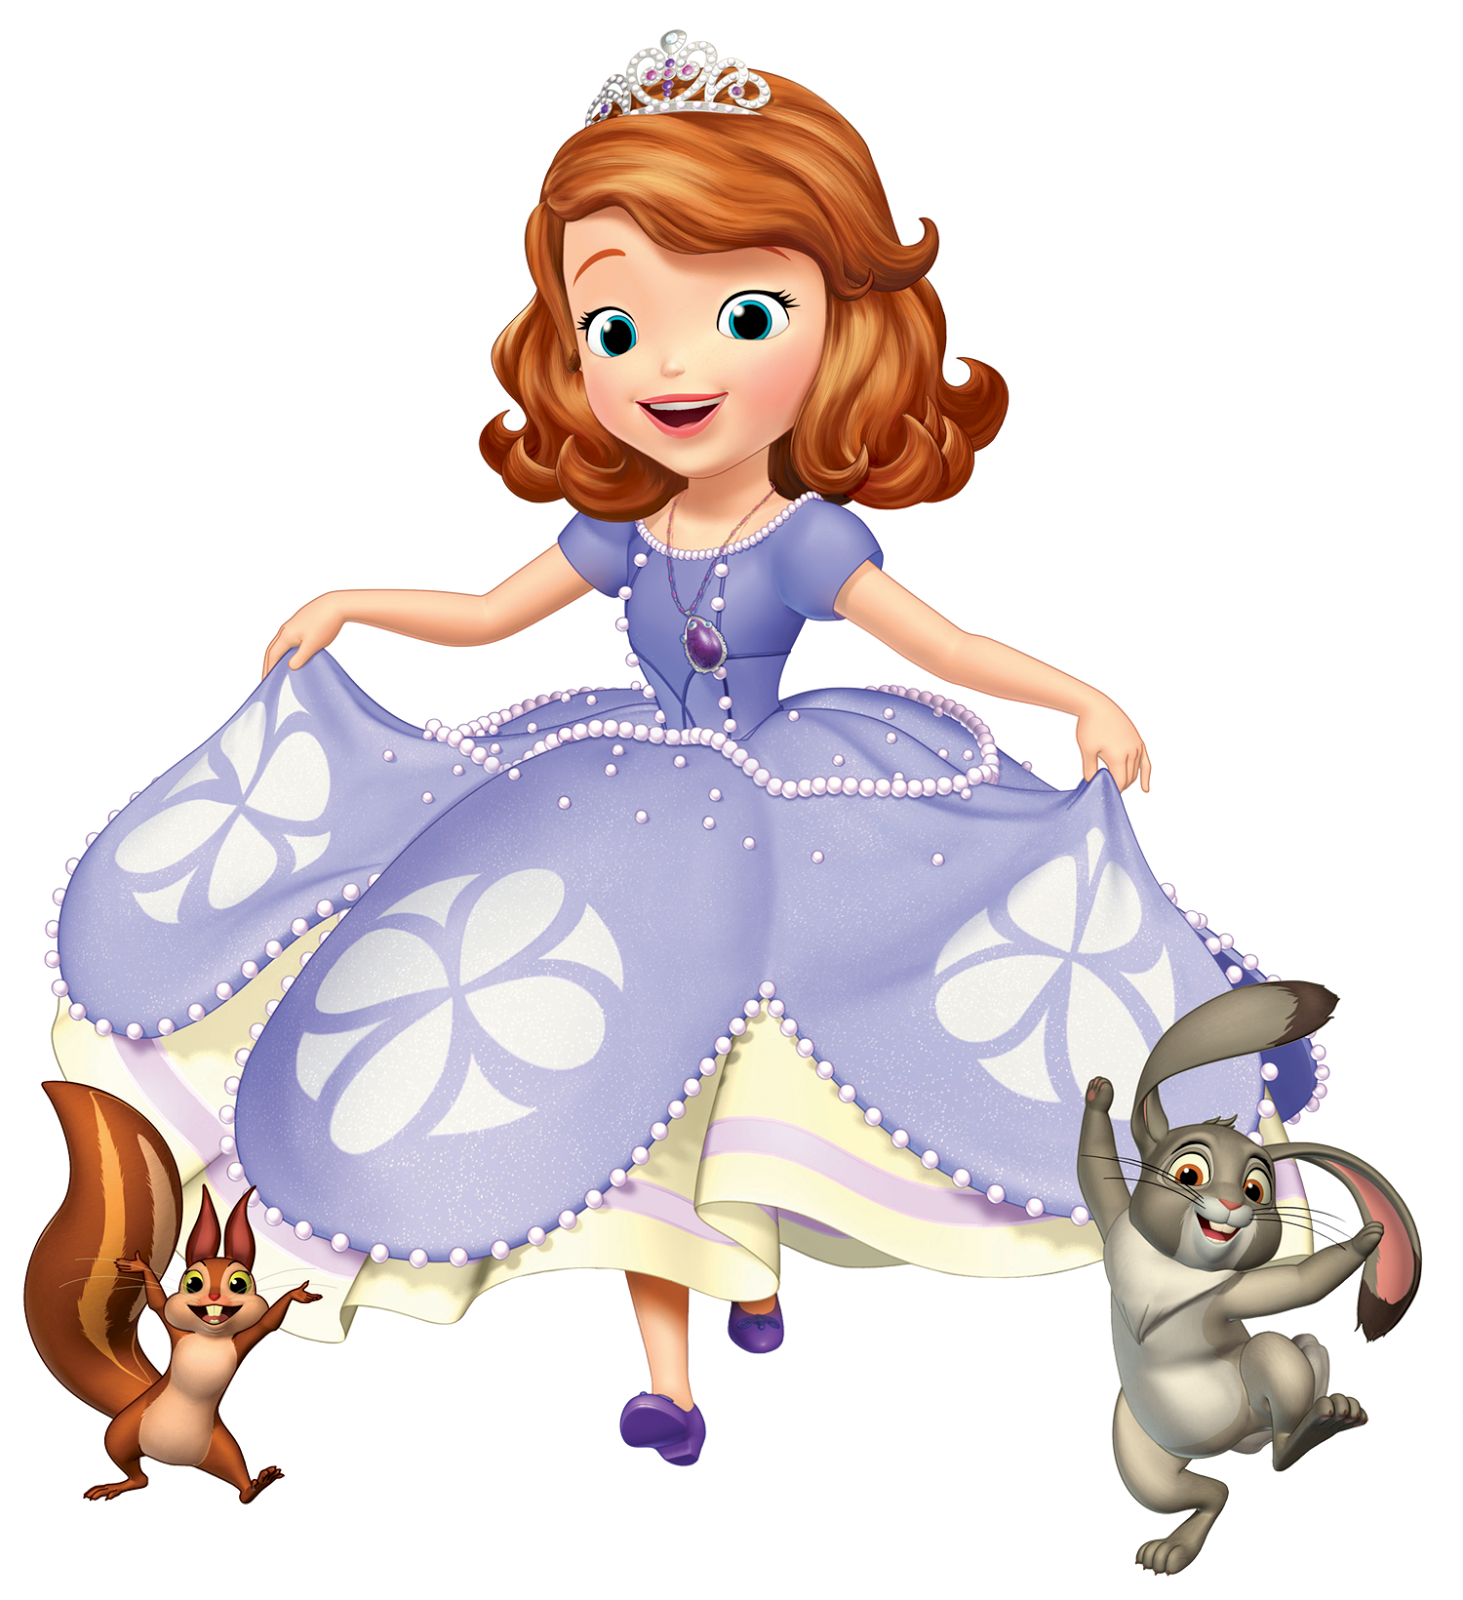 Pin By Evelyn Lozano On Png Sofia The First Characters Sofia The First Cartoon Disney Princess Sofia